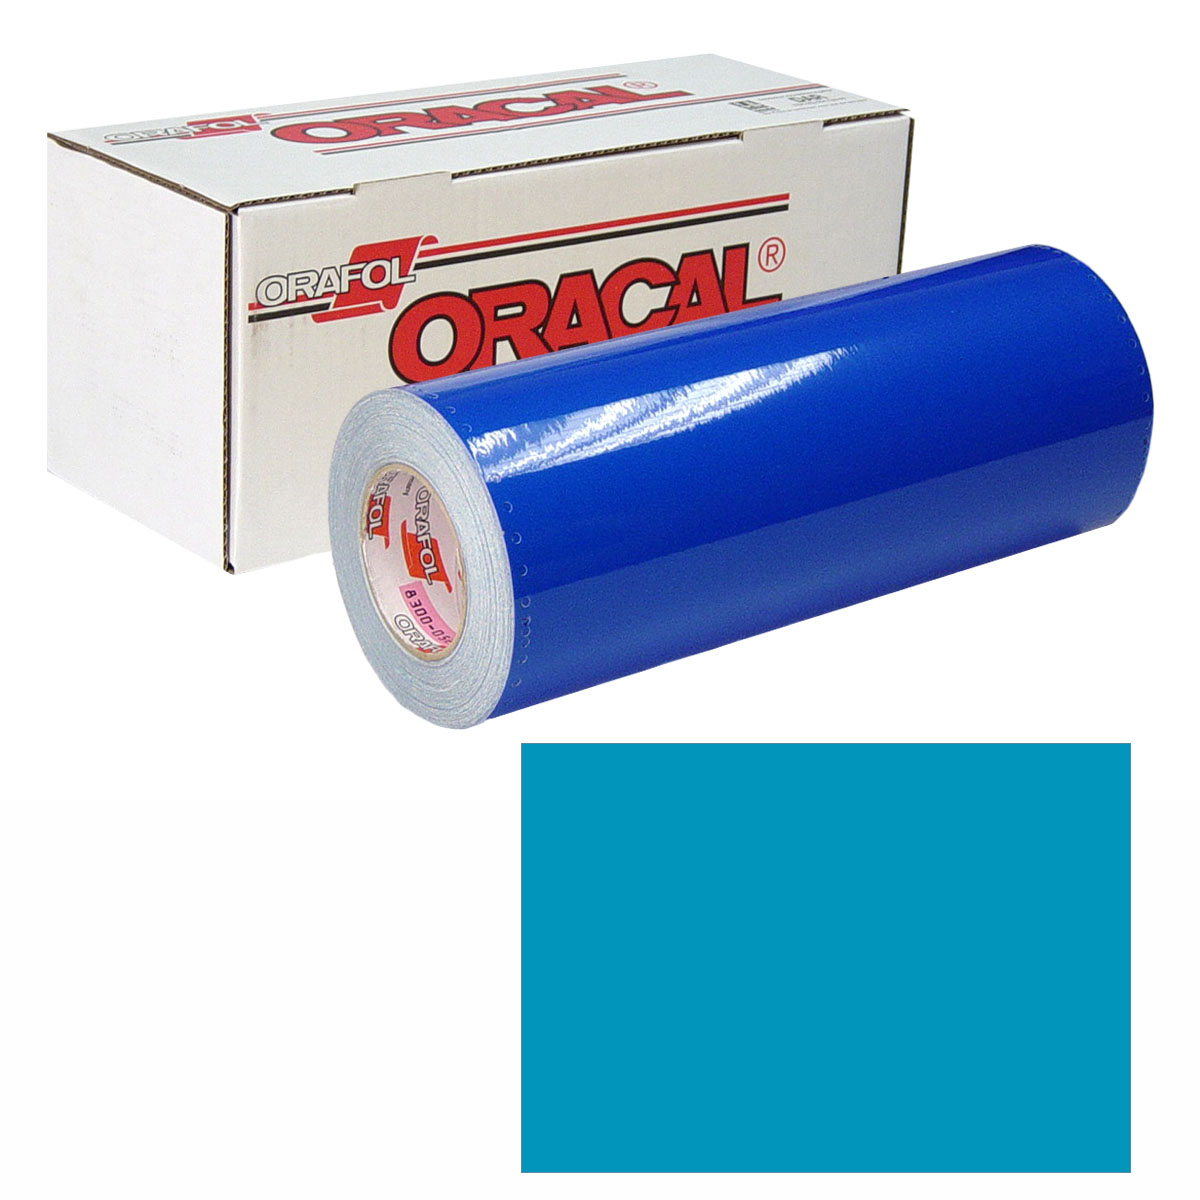 ORACAL 631 15in X 50yd 174 Teal